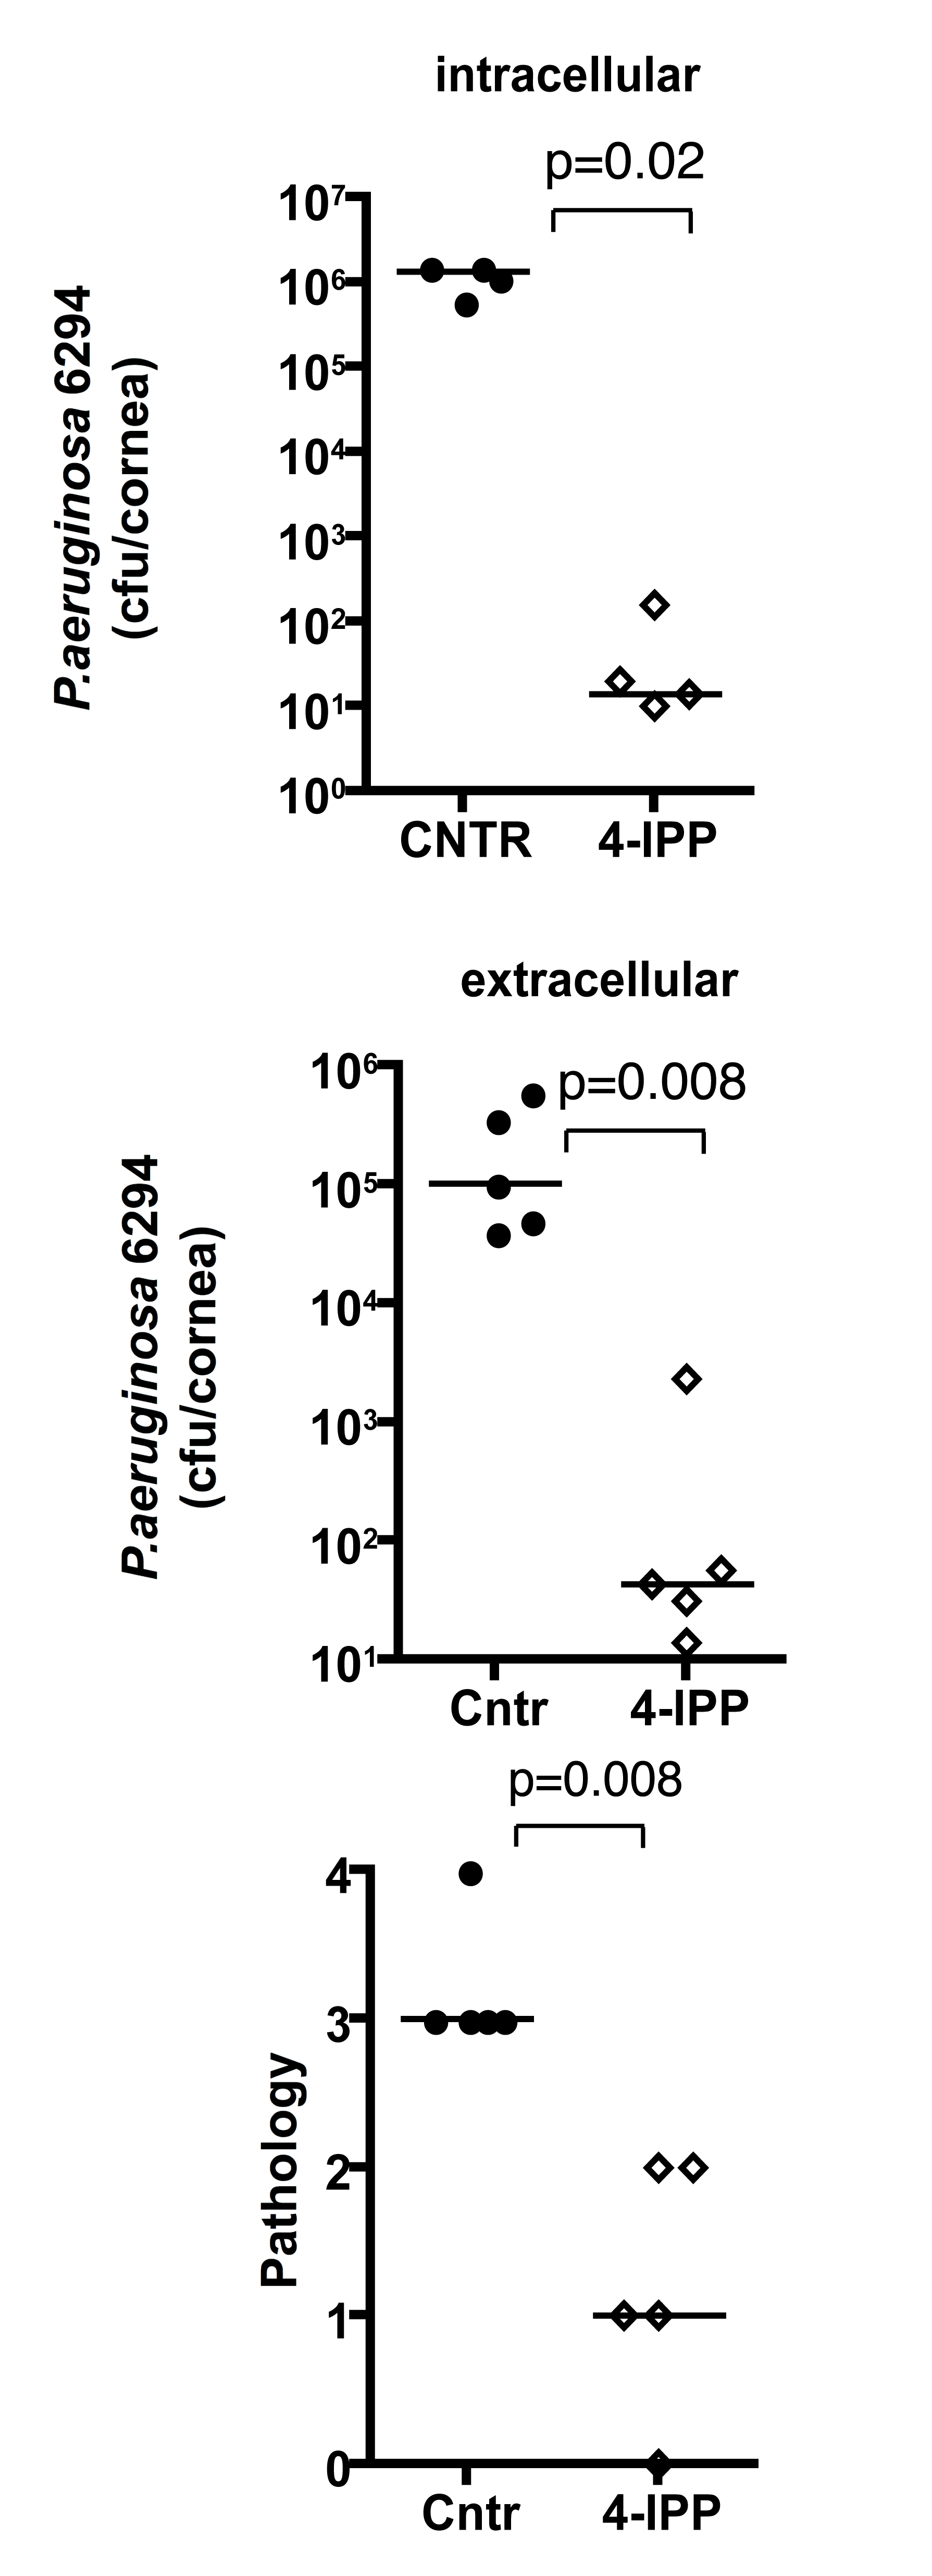 Treatment with 4-IPP promotes recovery from <i>P. aeruginosa</i>-induced corneal infection and pathology.